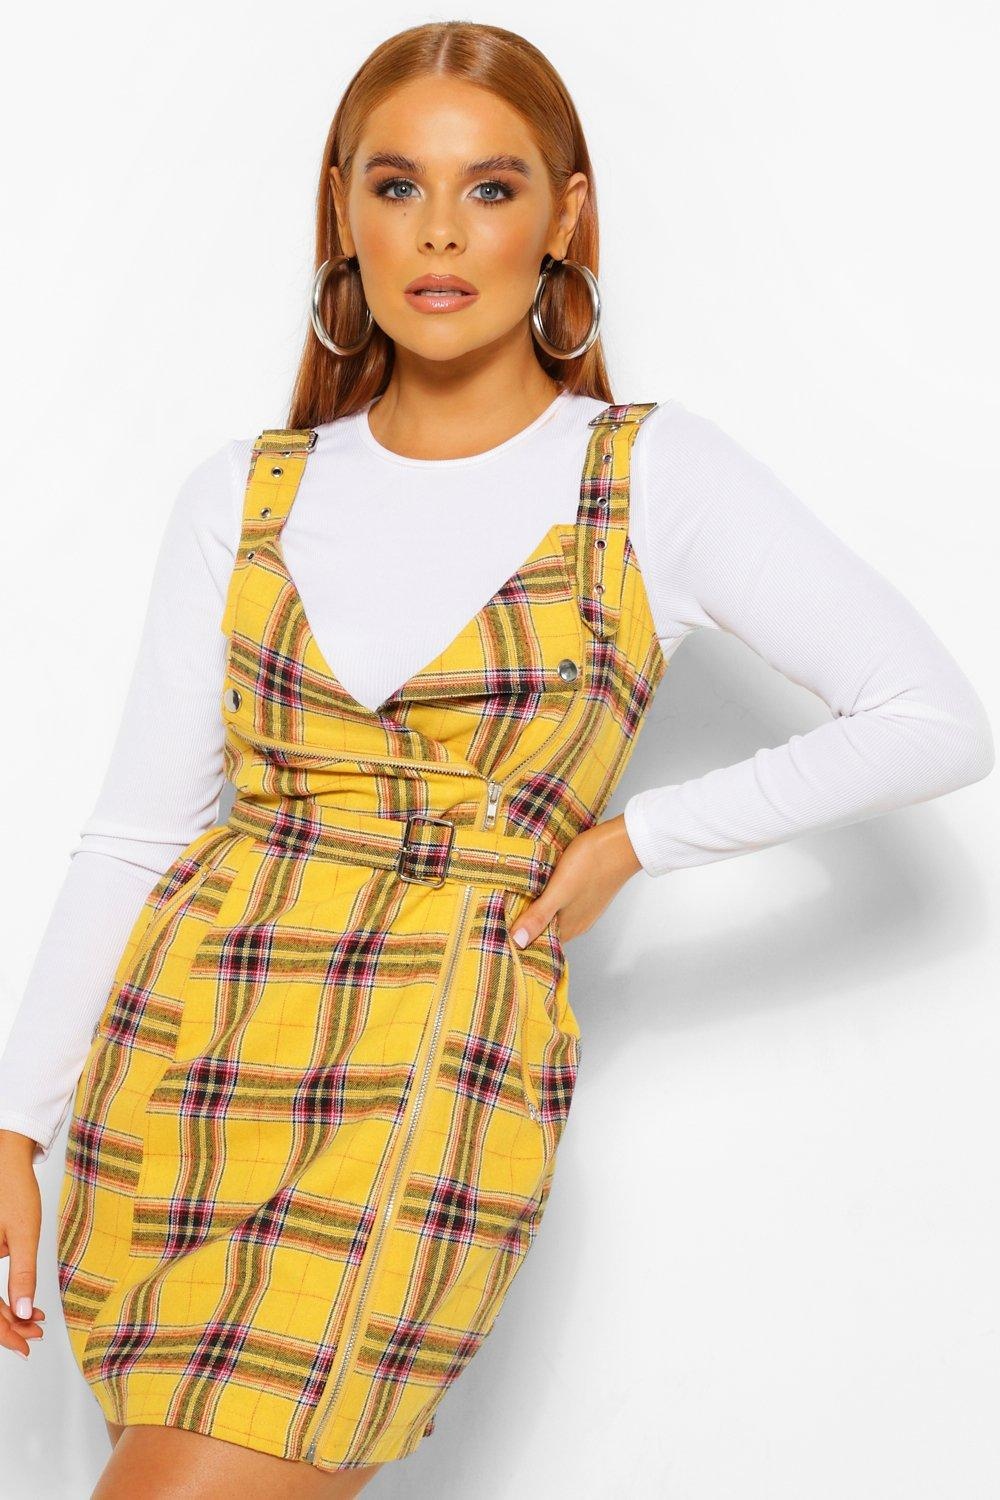 90s Clothing Outfits You Can Buy Now Womens Flannel Biker Detail Pinny Dress - Yellow - 10 $9.60 AT vintagedancer.com